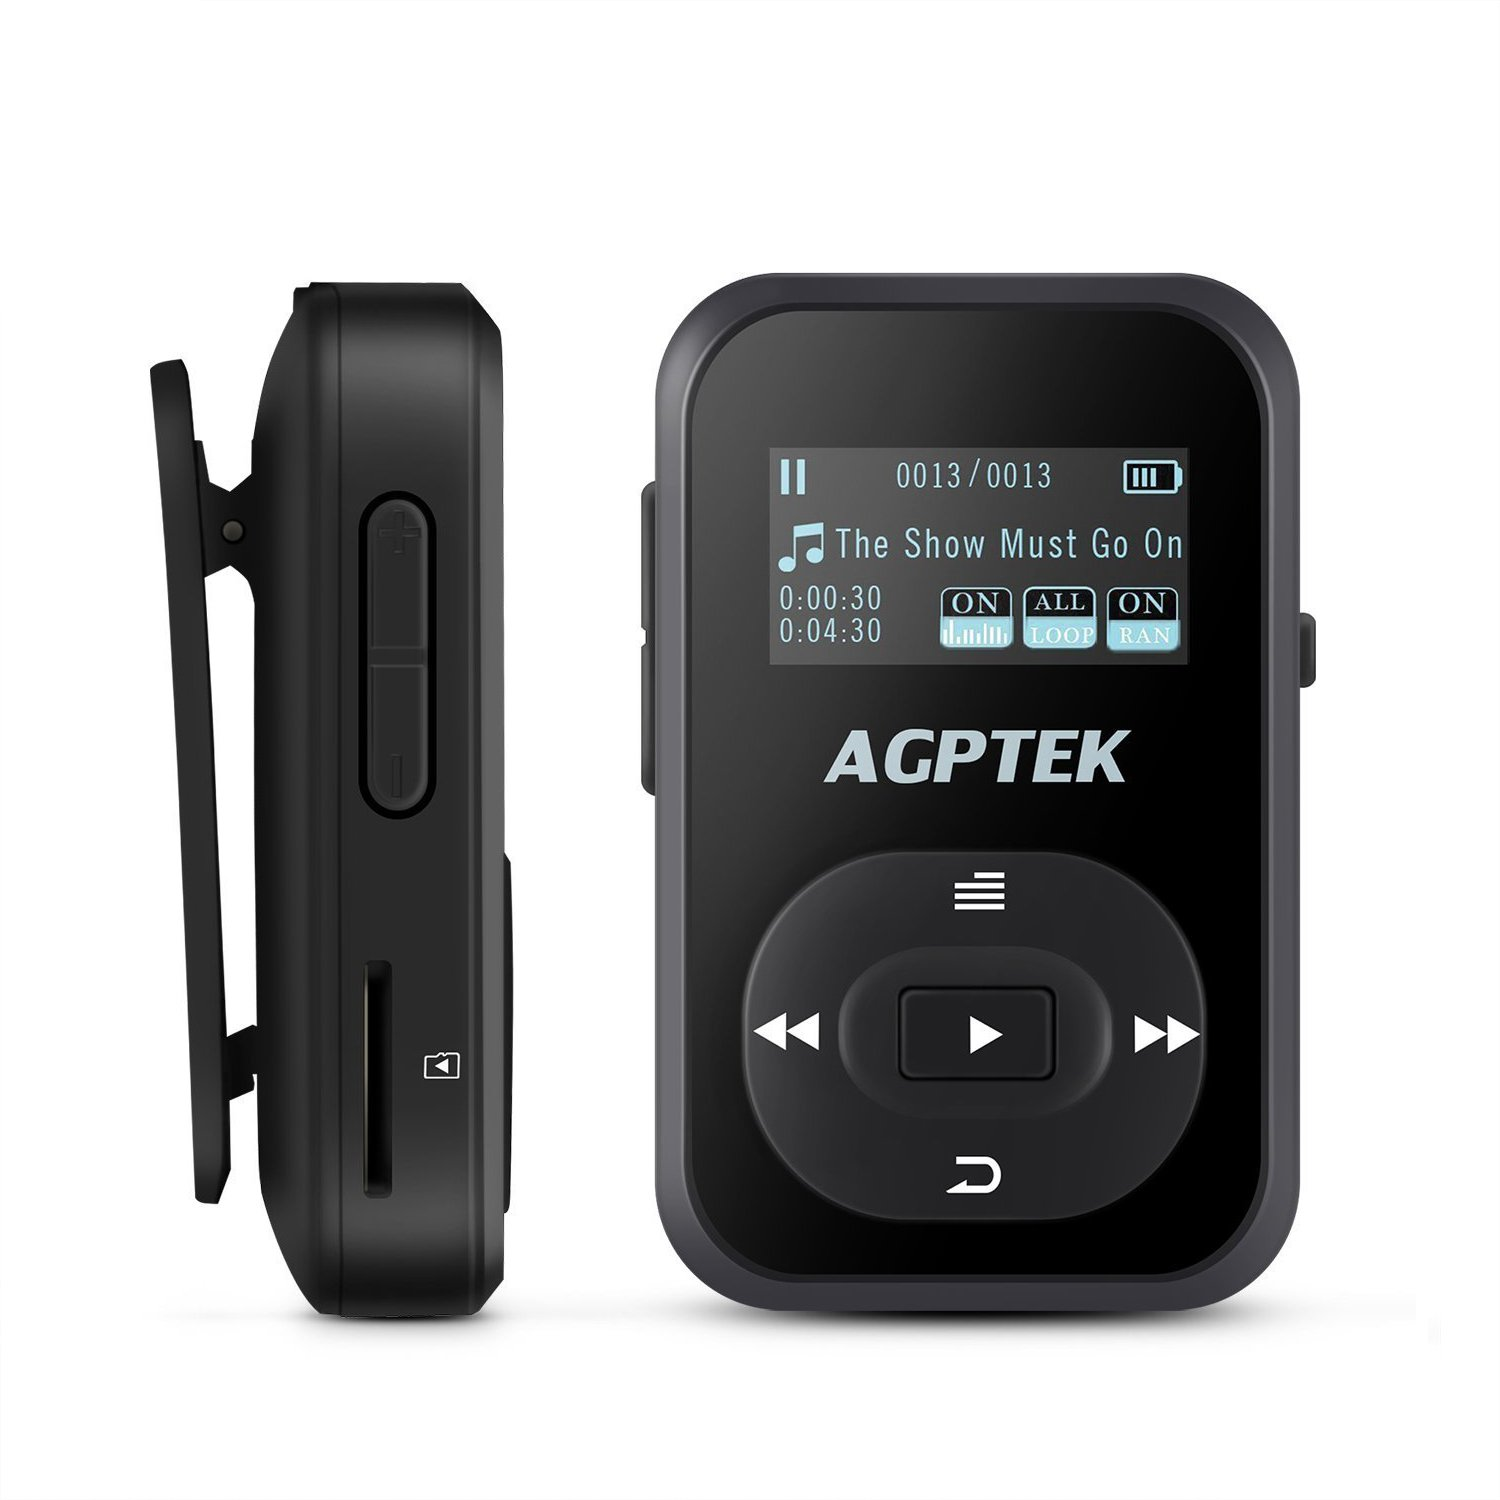 AGPTEK A26 8GB Bluetooth MP3 Player (Best for Workout sessions)